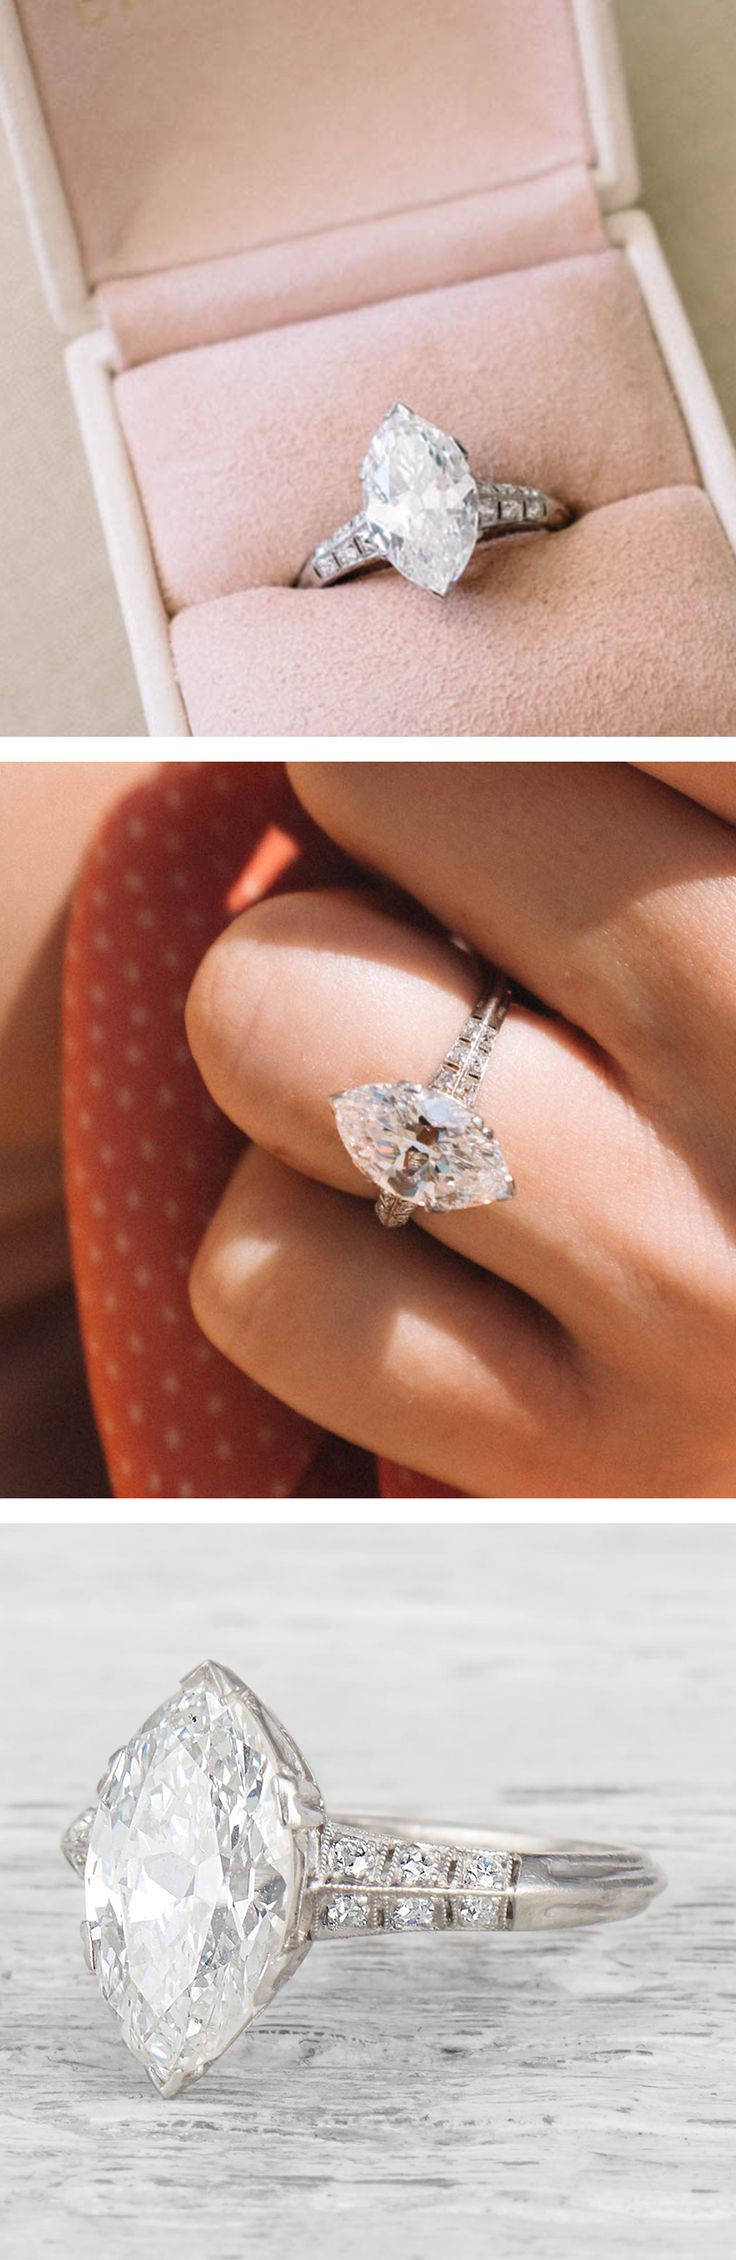 We love marquise cuts from the early 20th century. This vintage engagement ring from the Edwardian era has a beautifully cut 3.02 carat marquise set in an elegantly simple setting. Marquise elongate the finger and always appear bigger then rounder shapes the same carat size. While the diamond looks delicious and big the beautiful faceting of this antique diamond setting keep it ultra sophisticated.